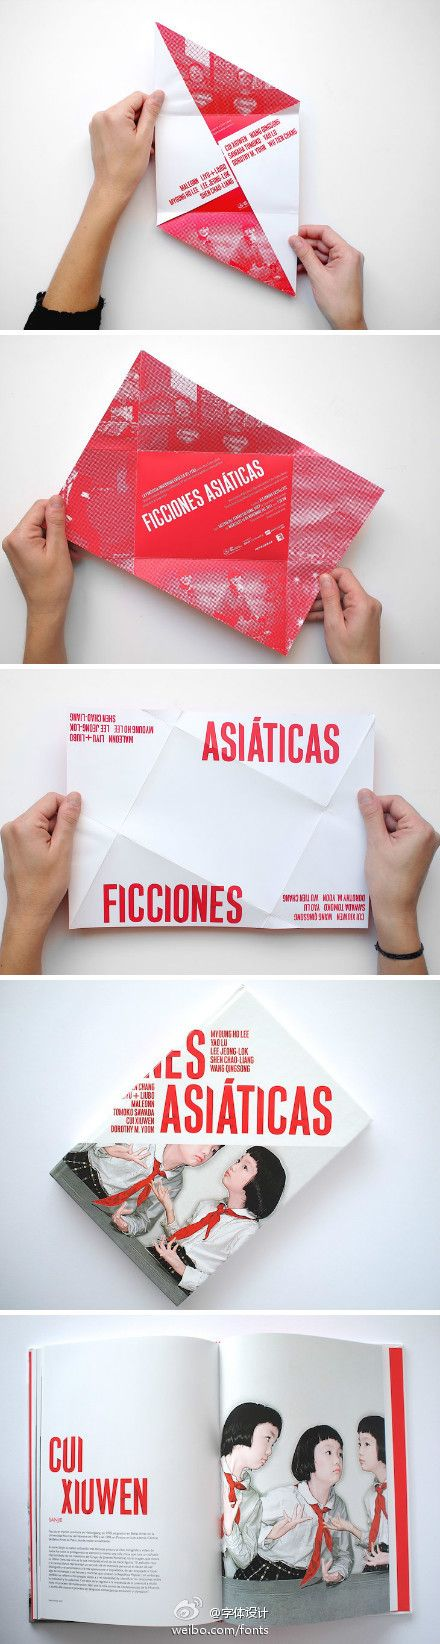 Ficciones Asiáticas  http://www.arcreactions.com/services/email-marketing/: